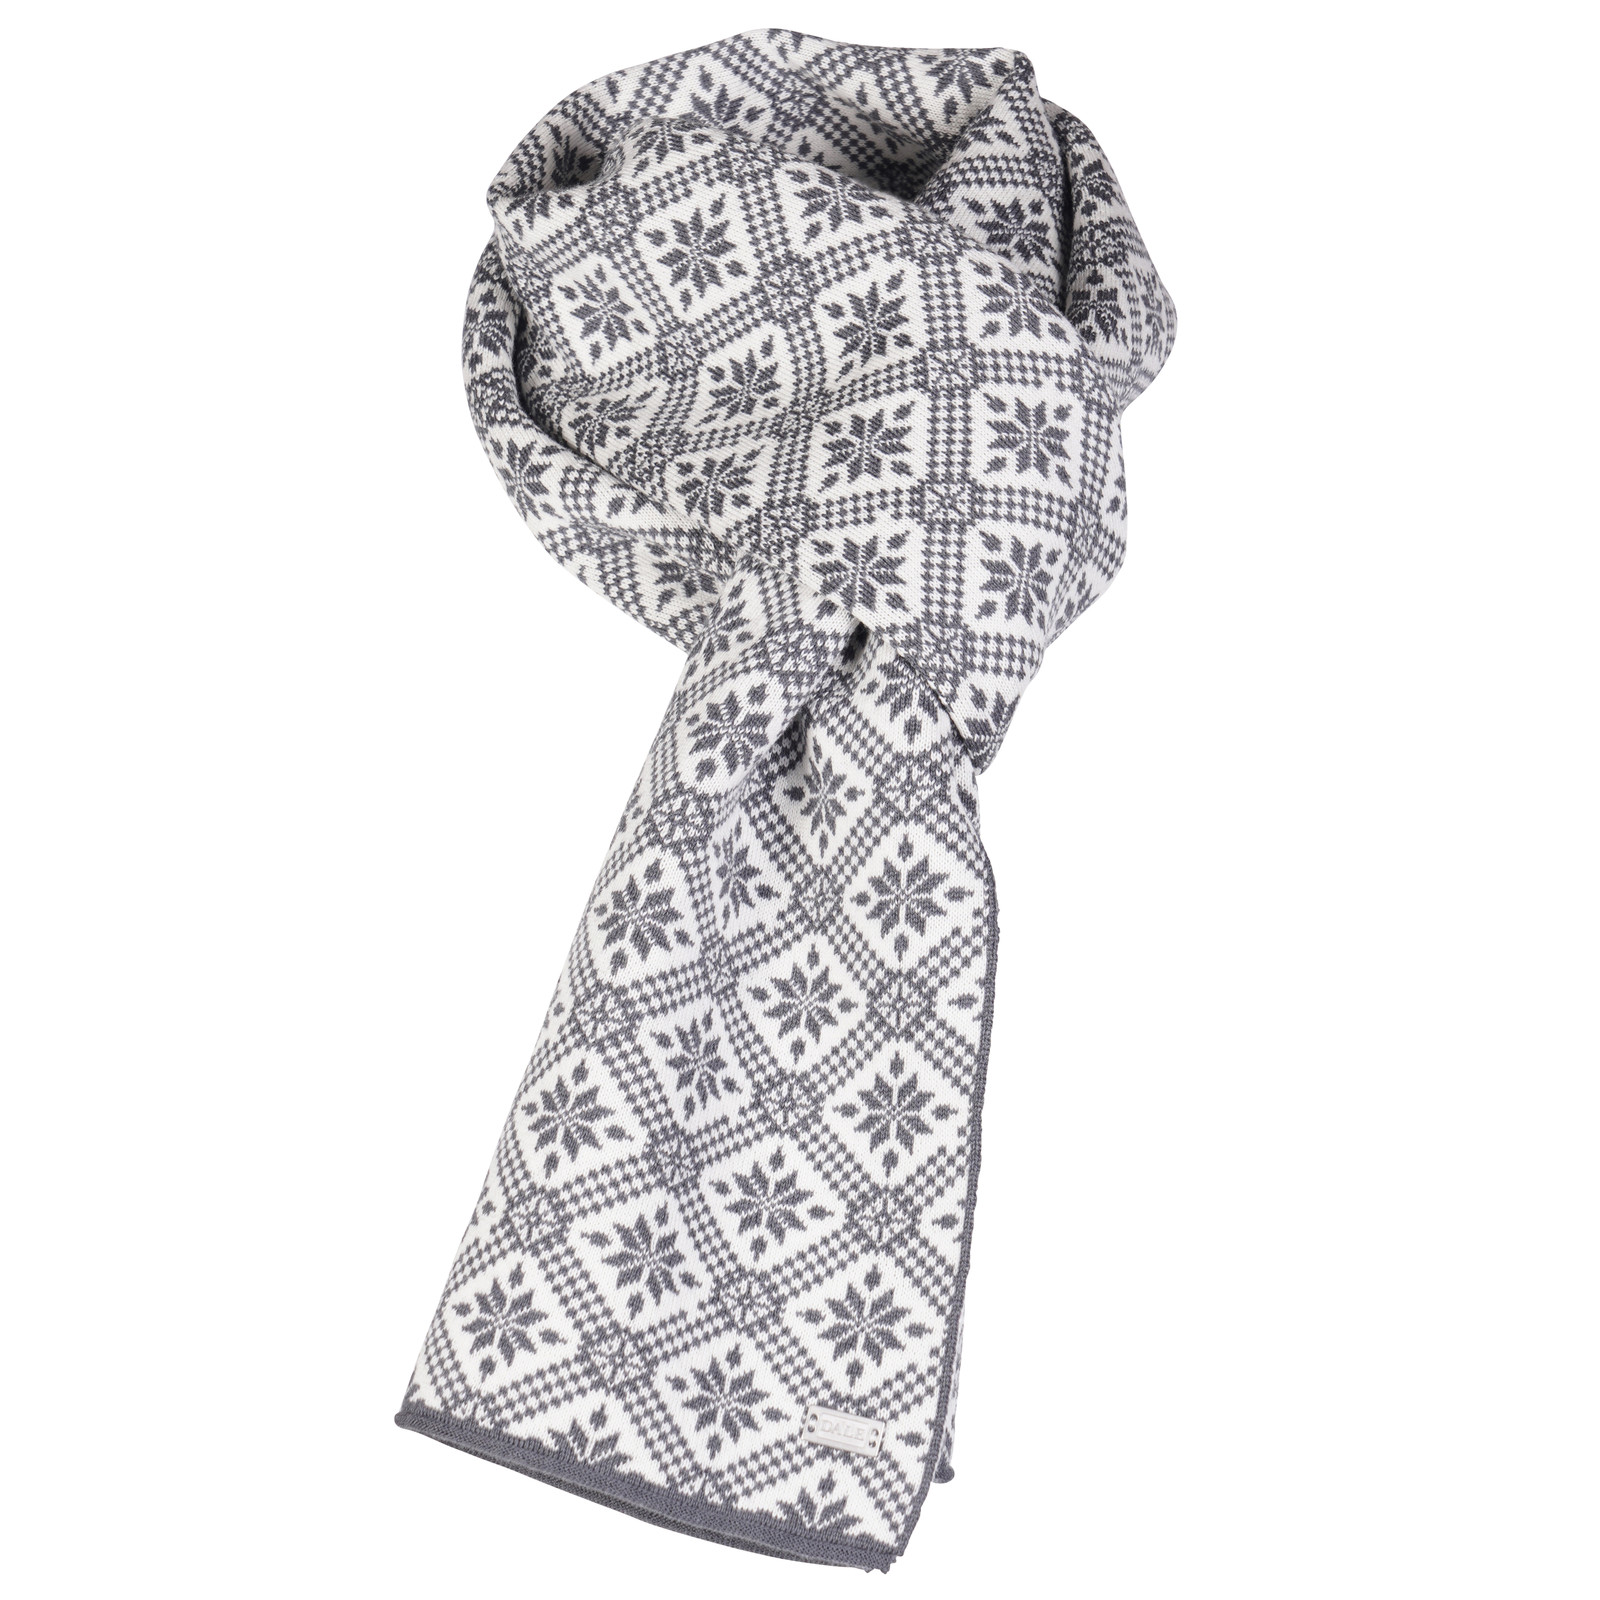 Dale of Norway Christiania Scarf - Schiefer/Off White, 11701-E